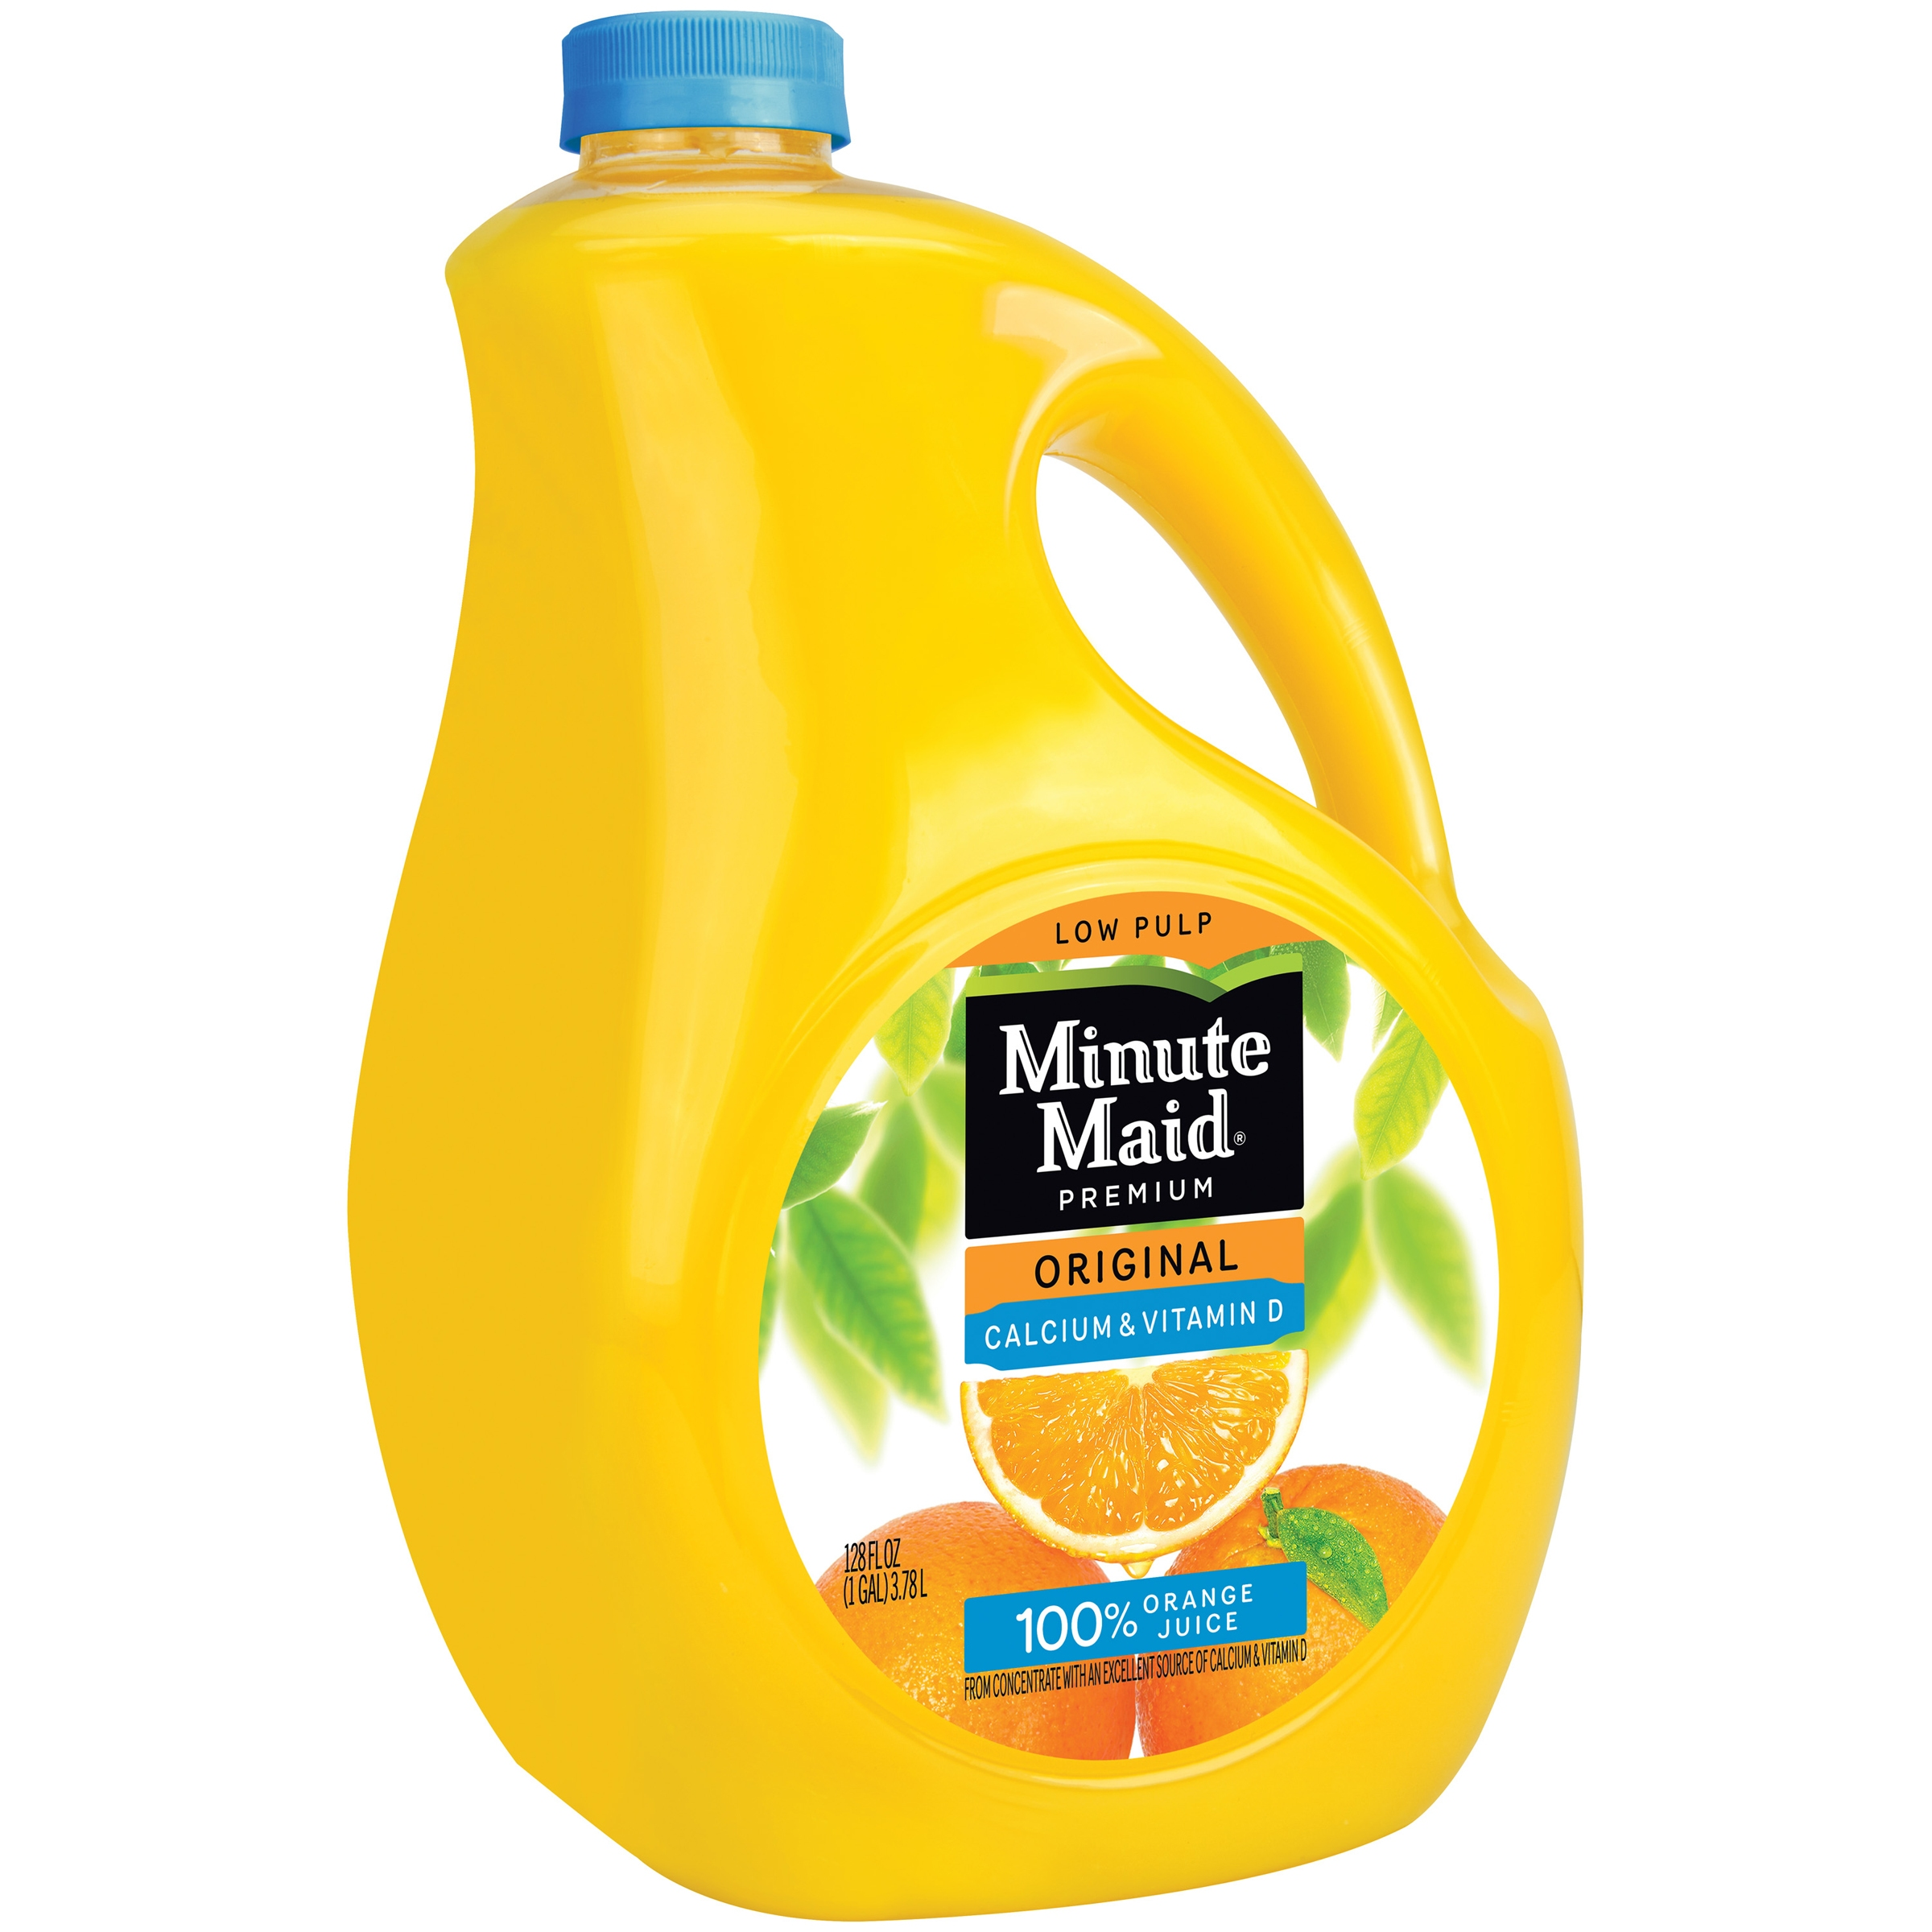 Minute Maid® Premium Original 100% Orange Juice Calcium & Vitamin D added 128 fl. oz. Jug